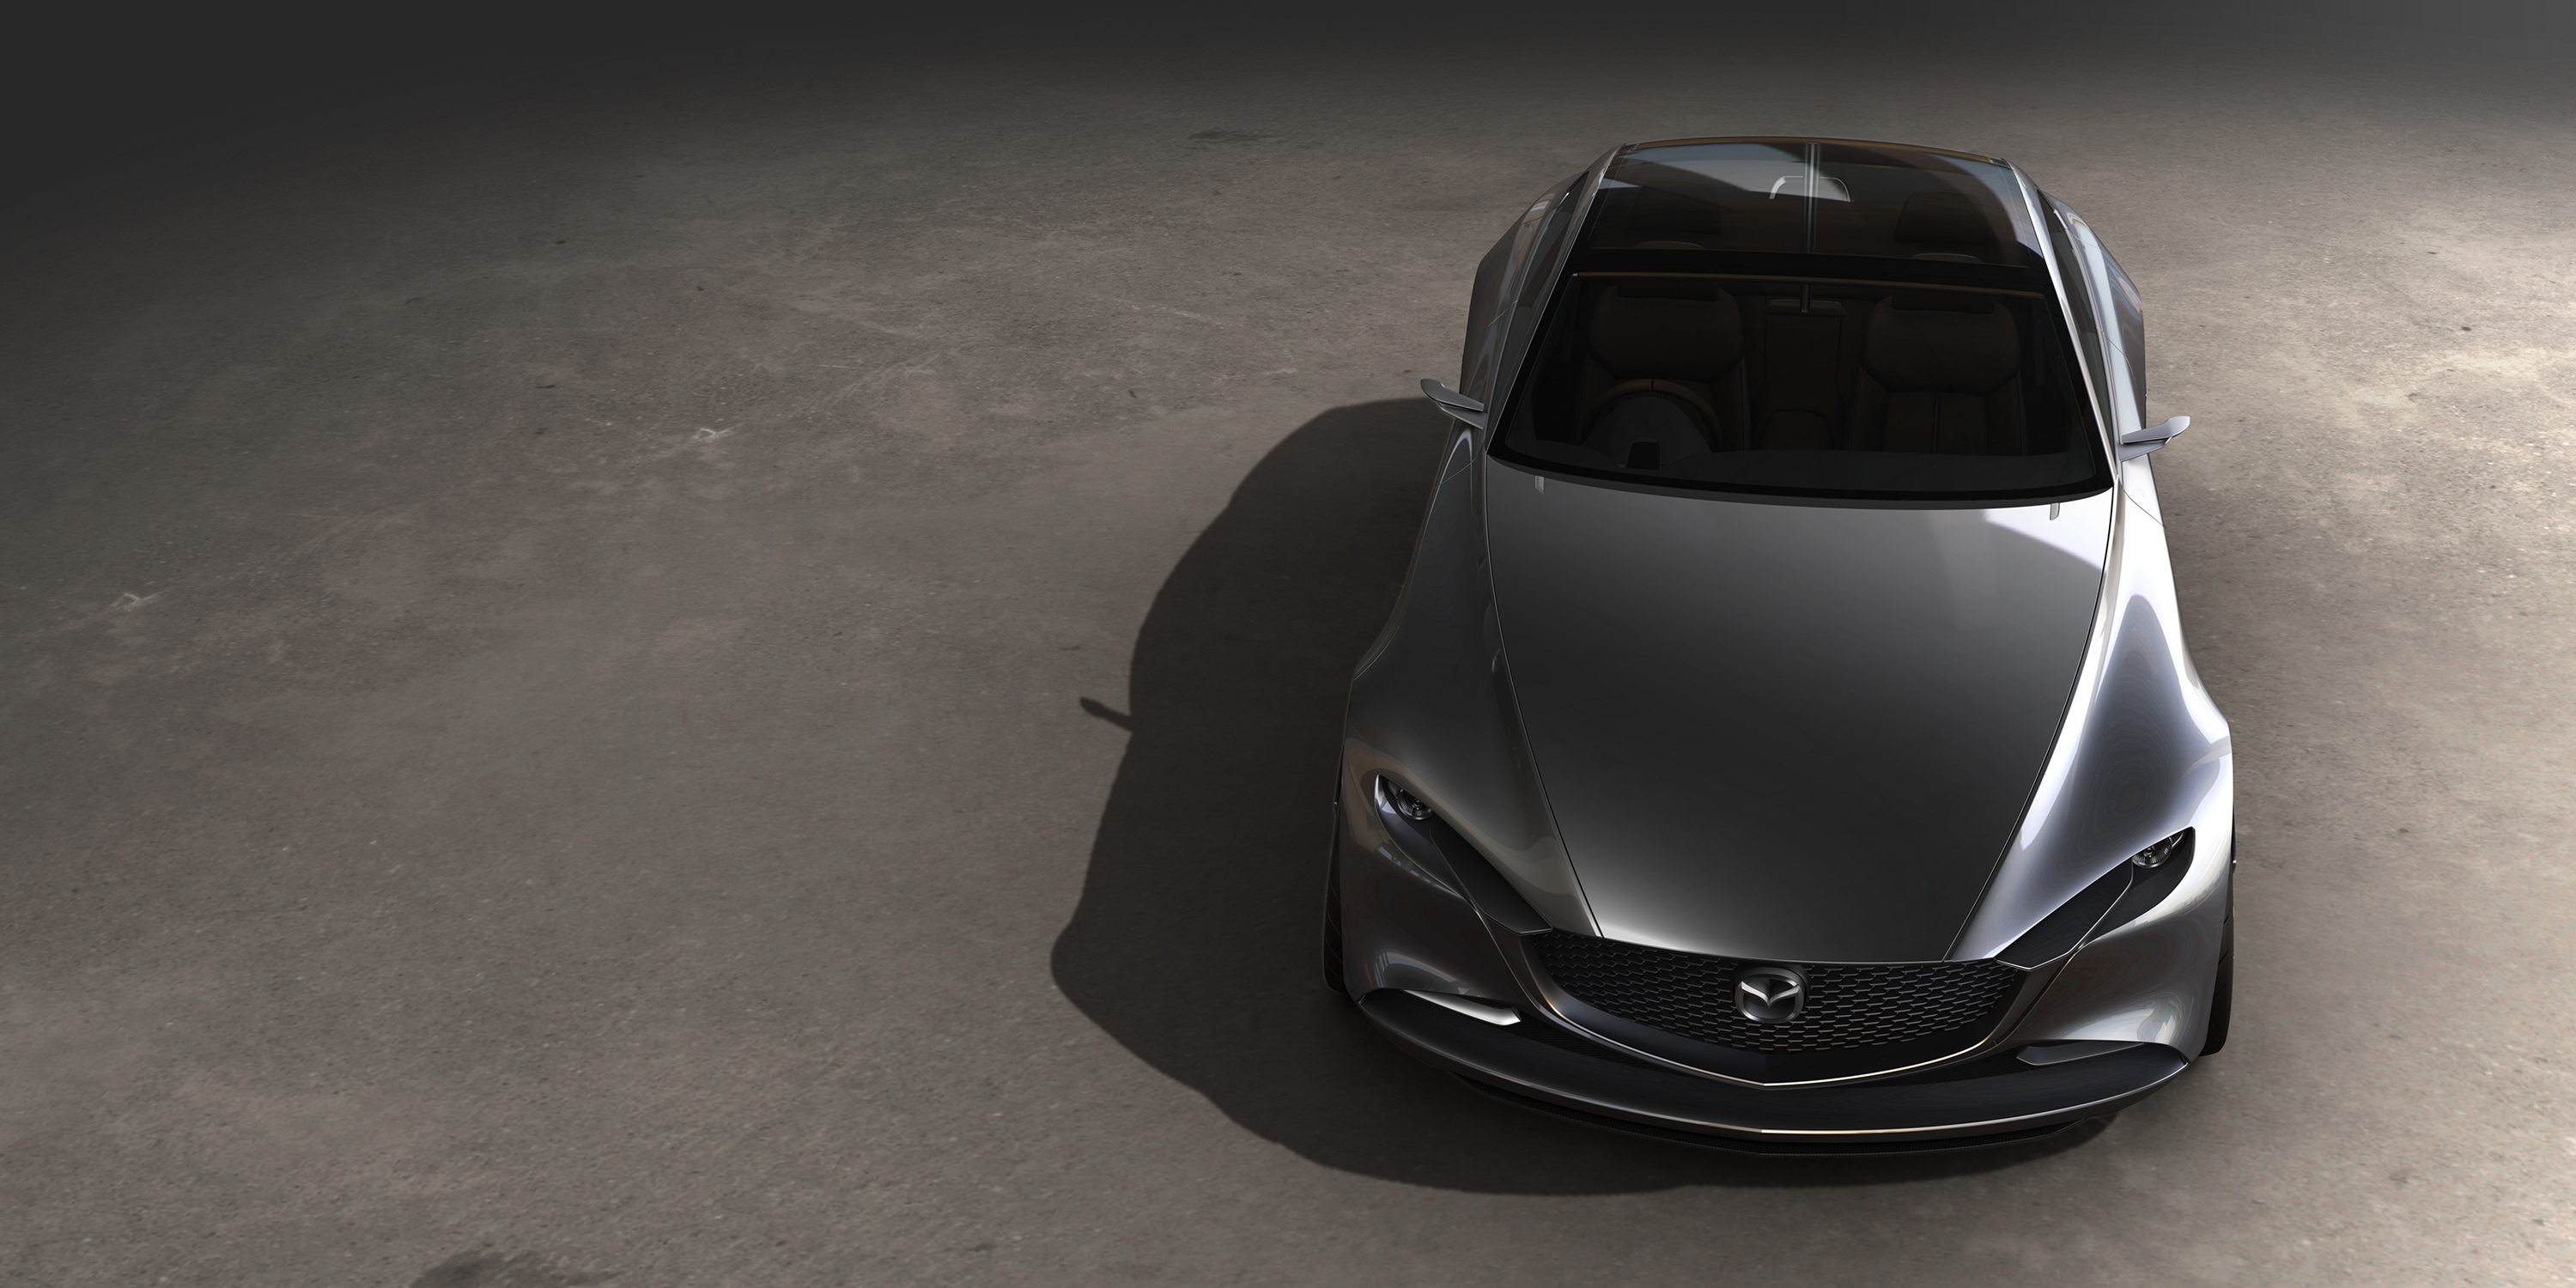 Mazda Vision Coupe Concept Car Design